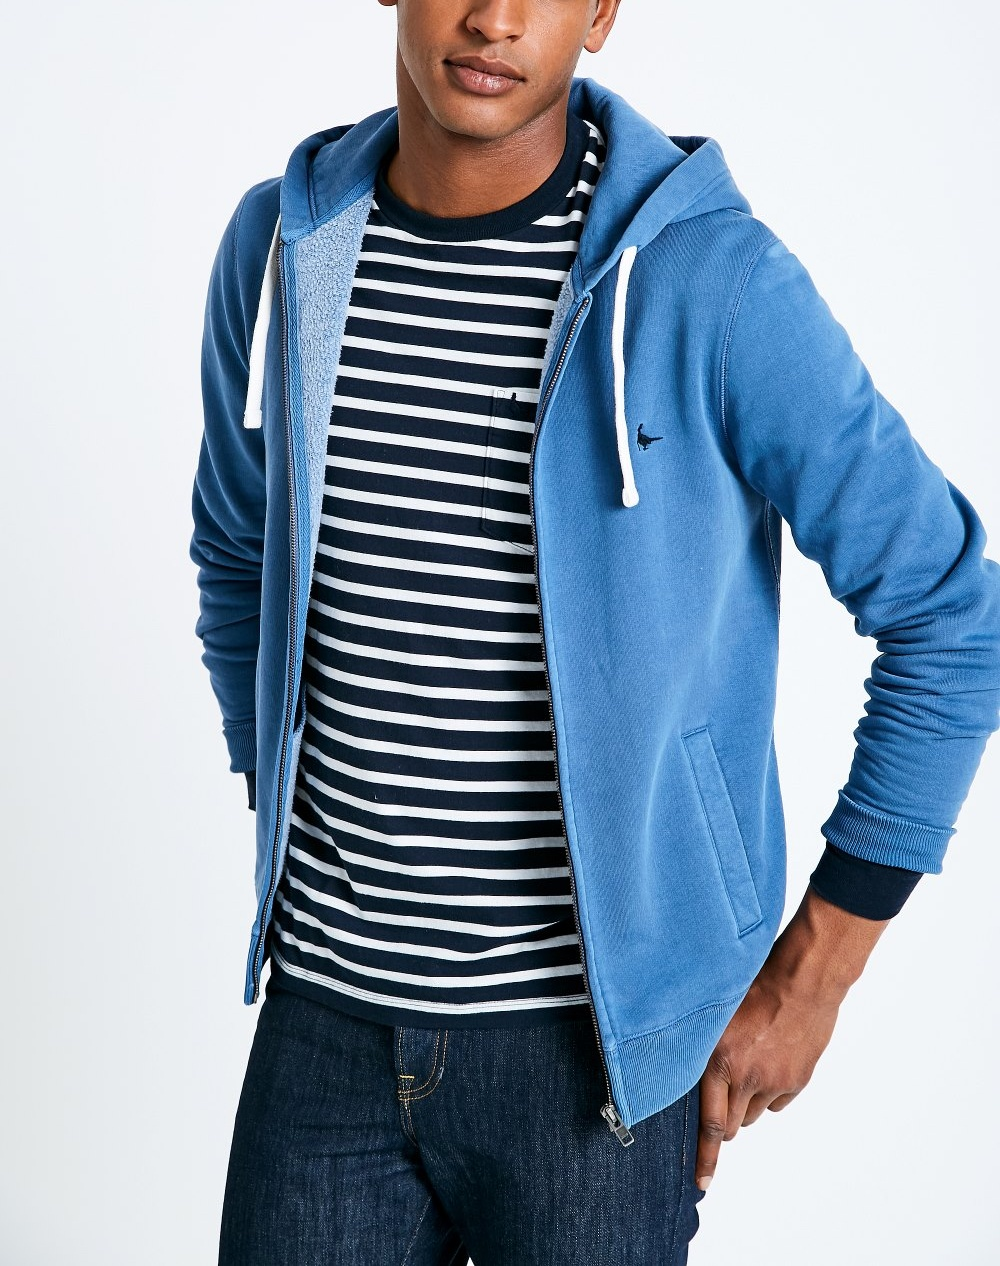 Jack Wills Marine PINEBROOK ZIP UP HOODIE